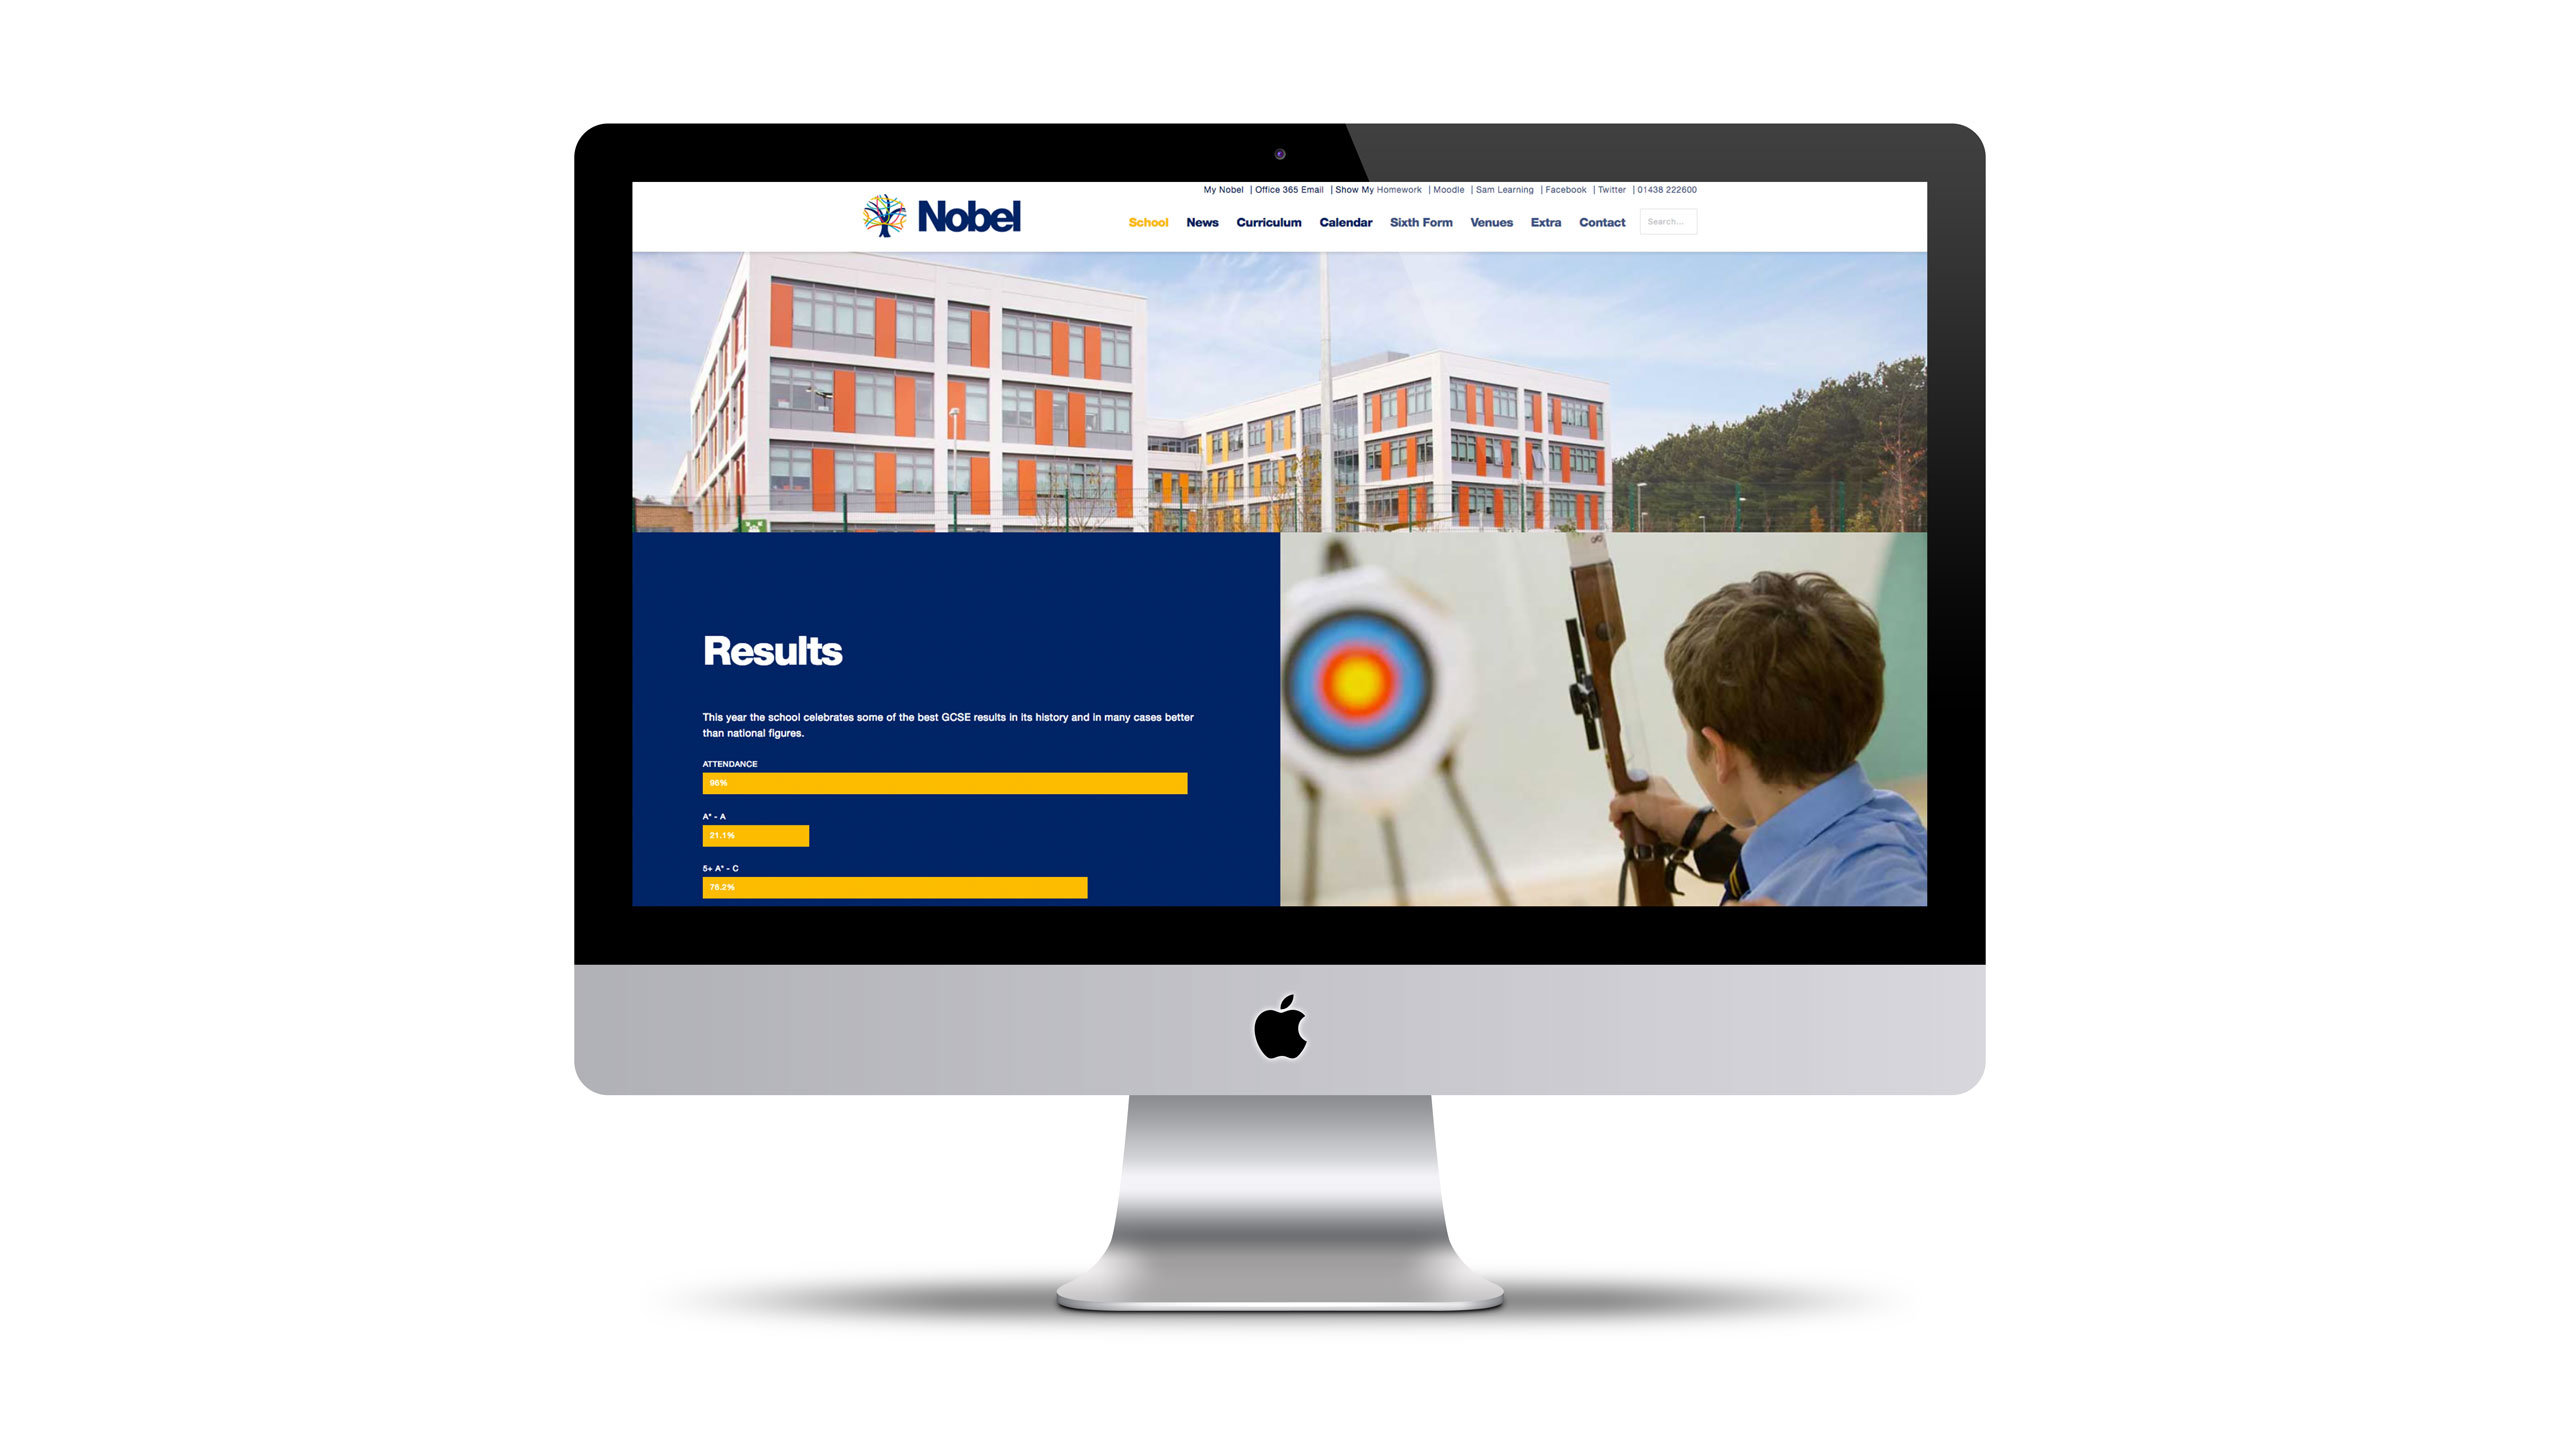 secondary school website design results page imac the nobel school